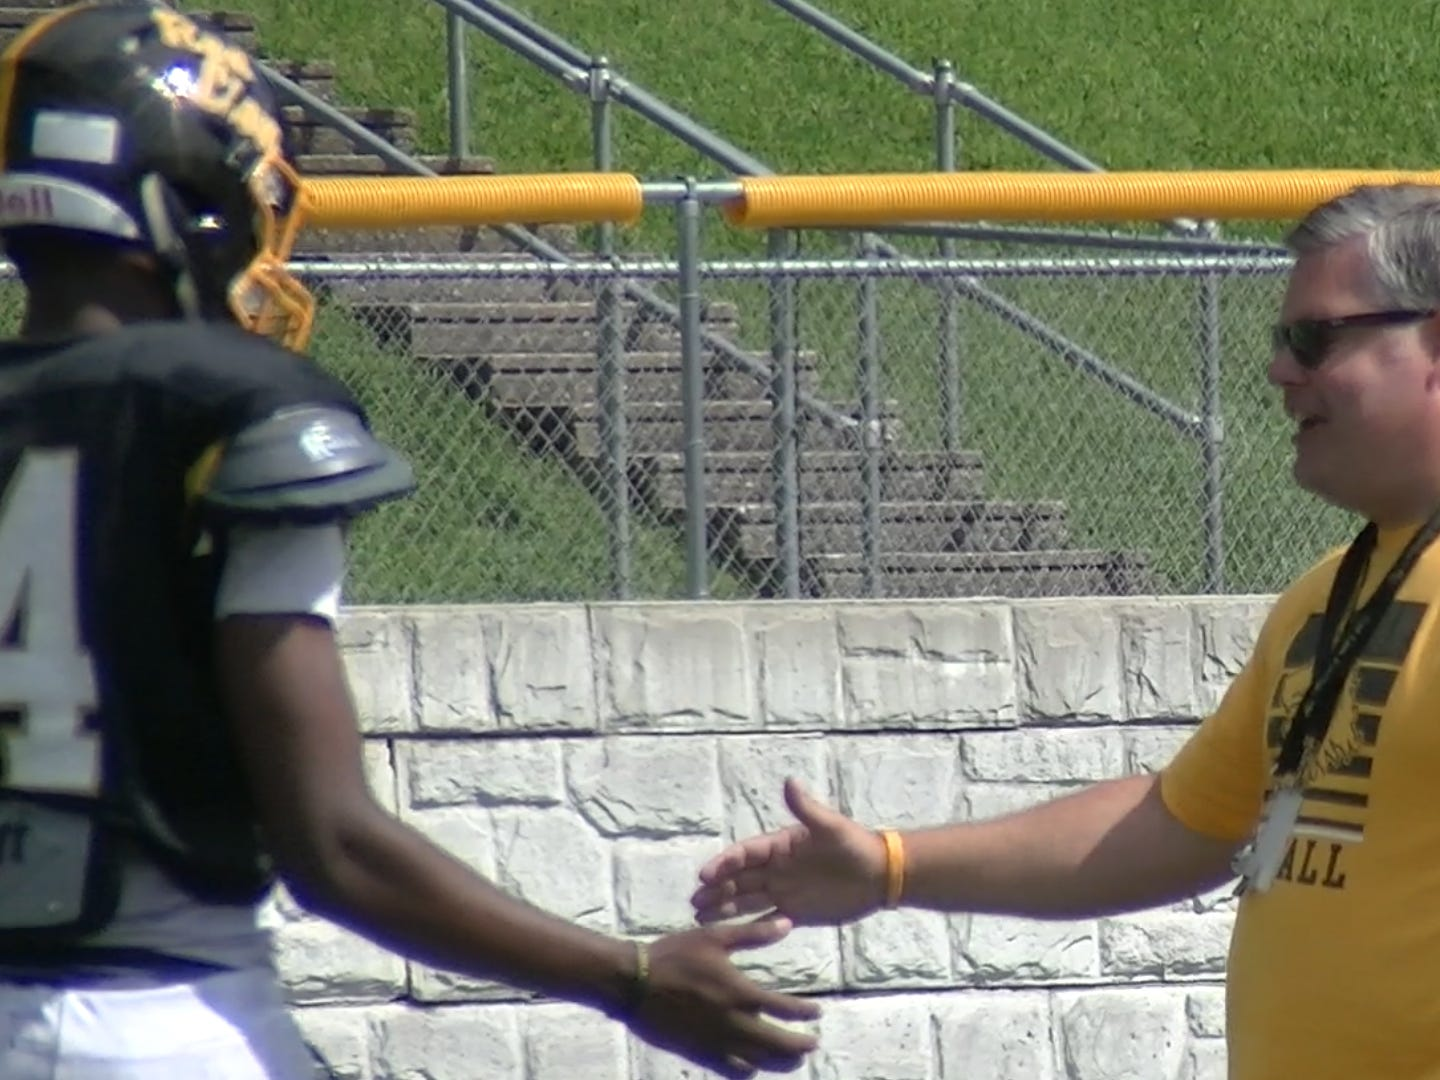 Red Lion defensive coordinator J.D. Granger congratulates Davante Dennis after he forced a fumble during the first day of practice Monday, Aug. 13, 2018.